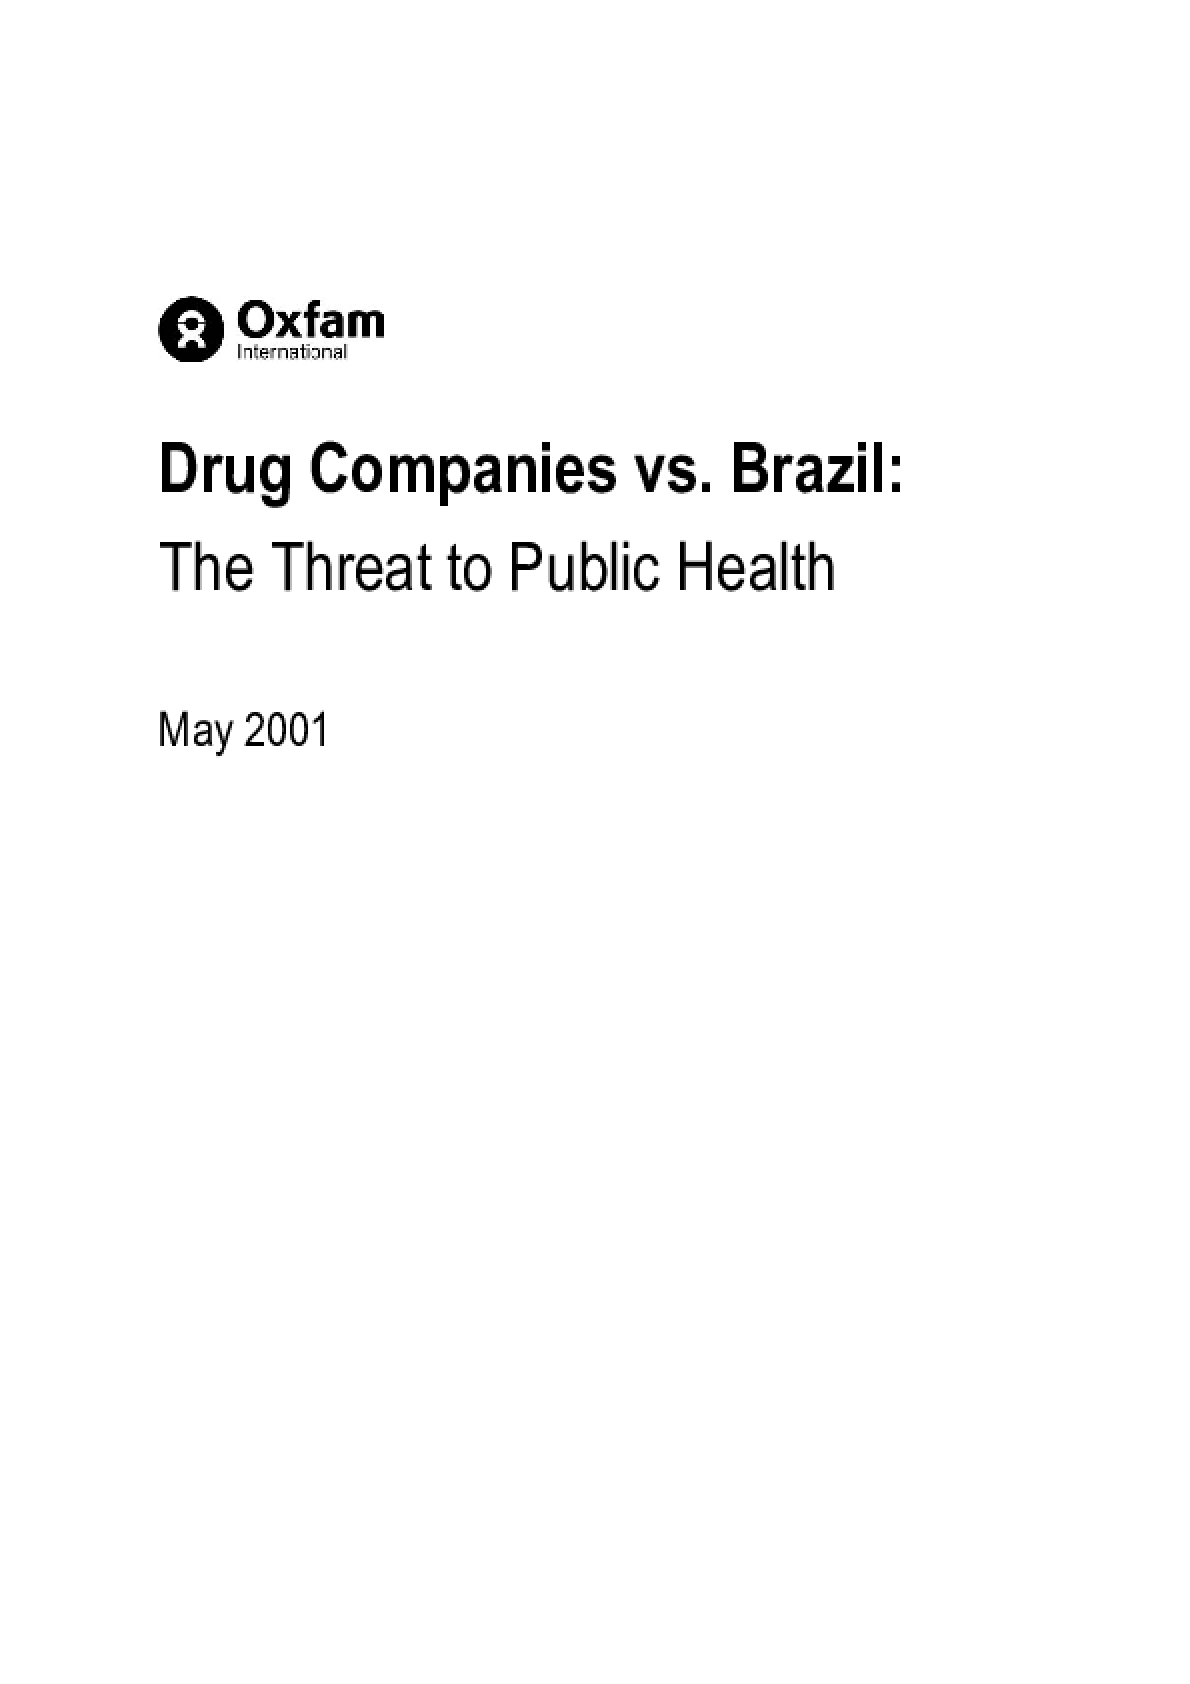 Drug Companies vs. Brazil: The threat to public health